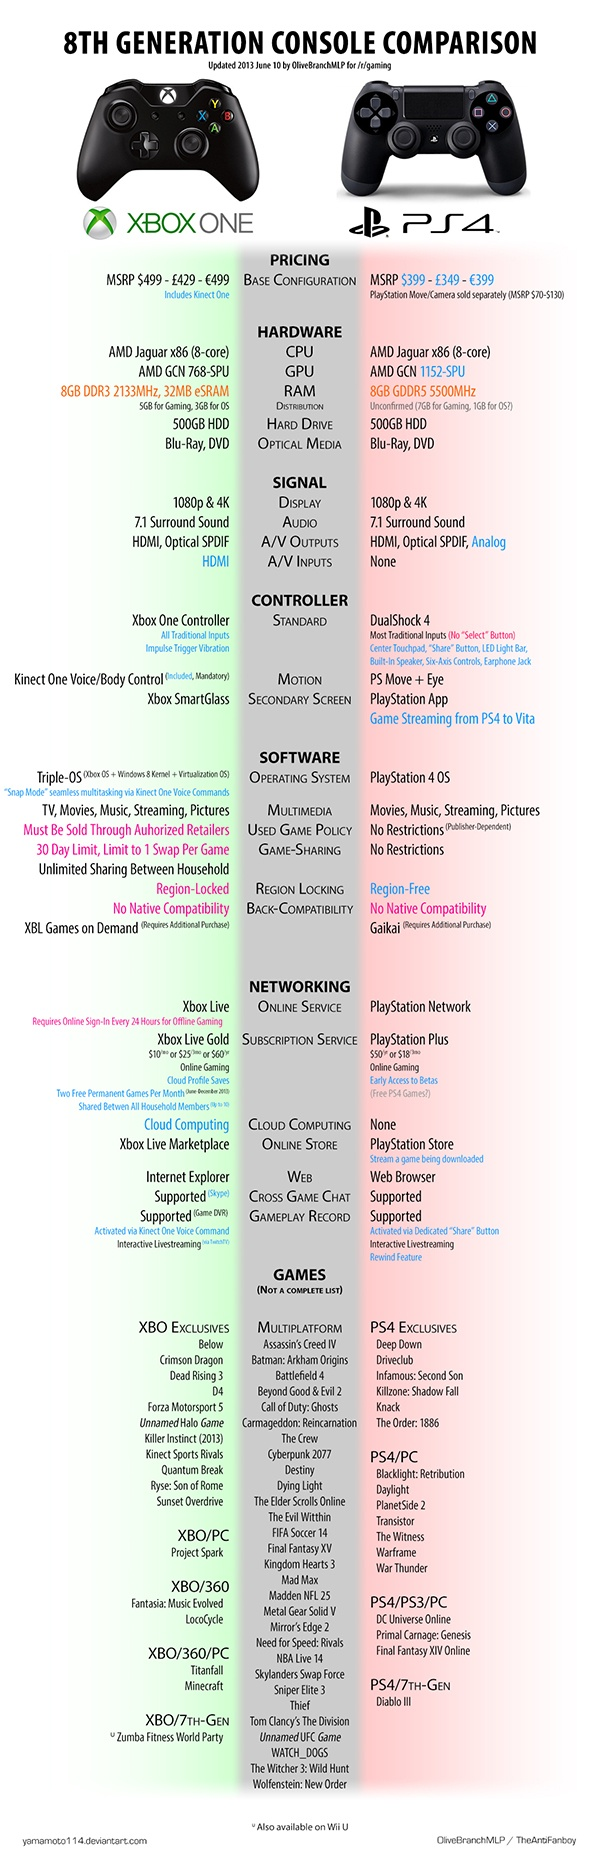 IMAGE(http://i0.wp.com/www.geeksaresexy.net/wp-content/uploads/2013/06/xbox-one-playstation-4-console-comparison-chart1.jpg?resize=600%2C1855)